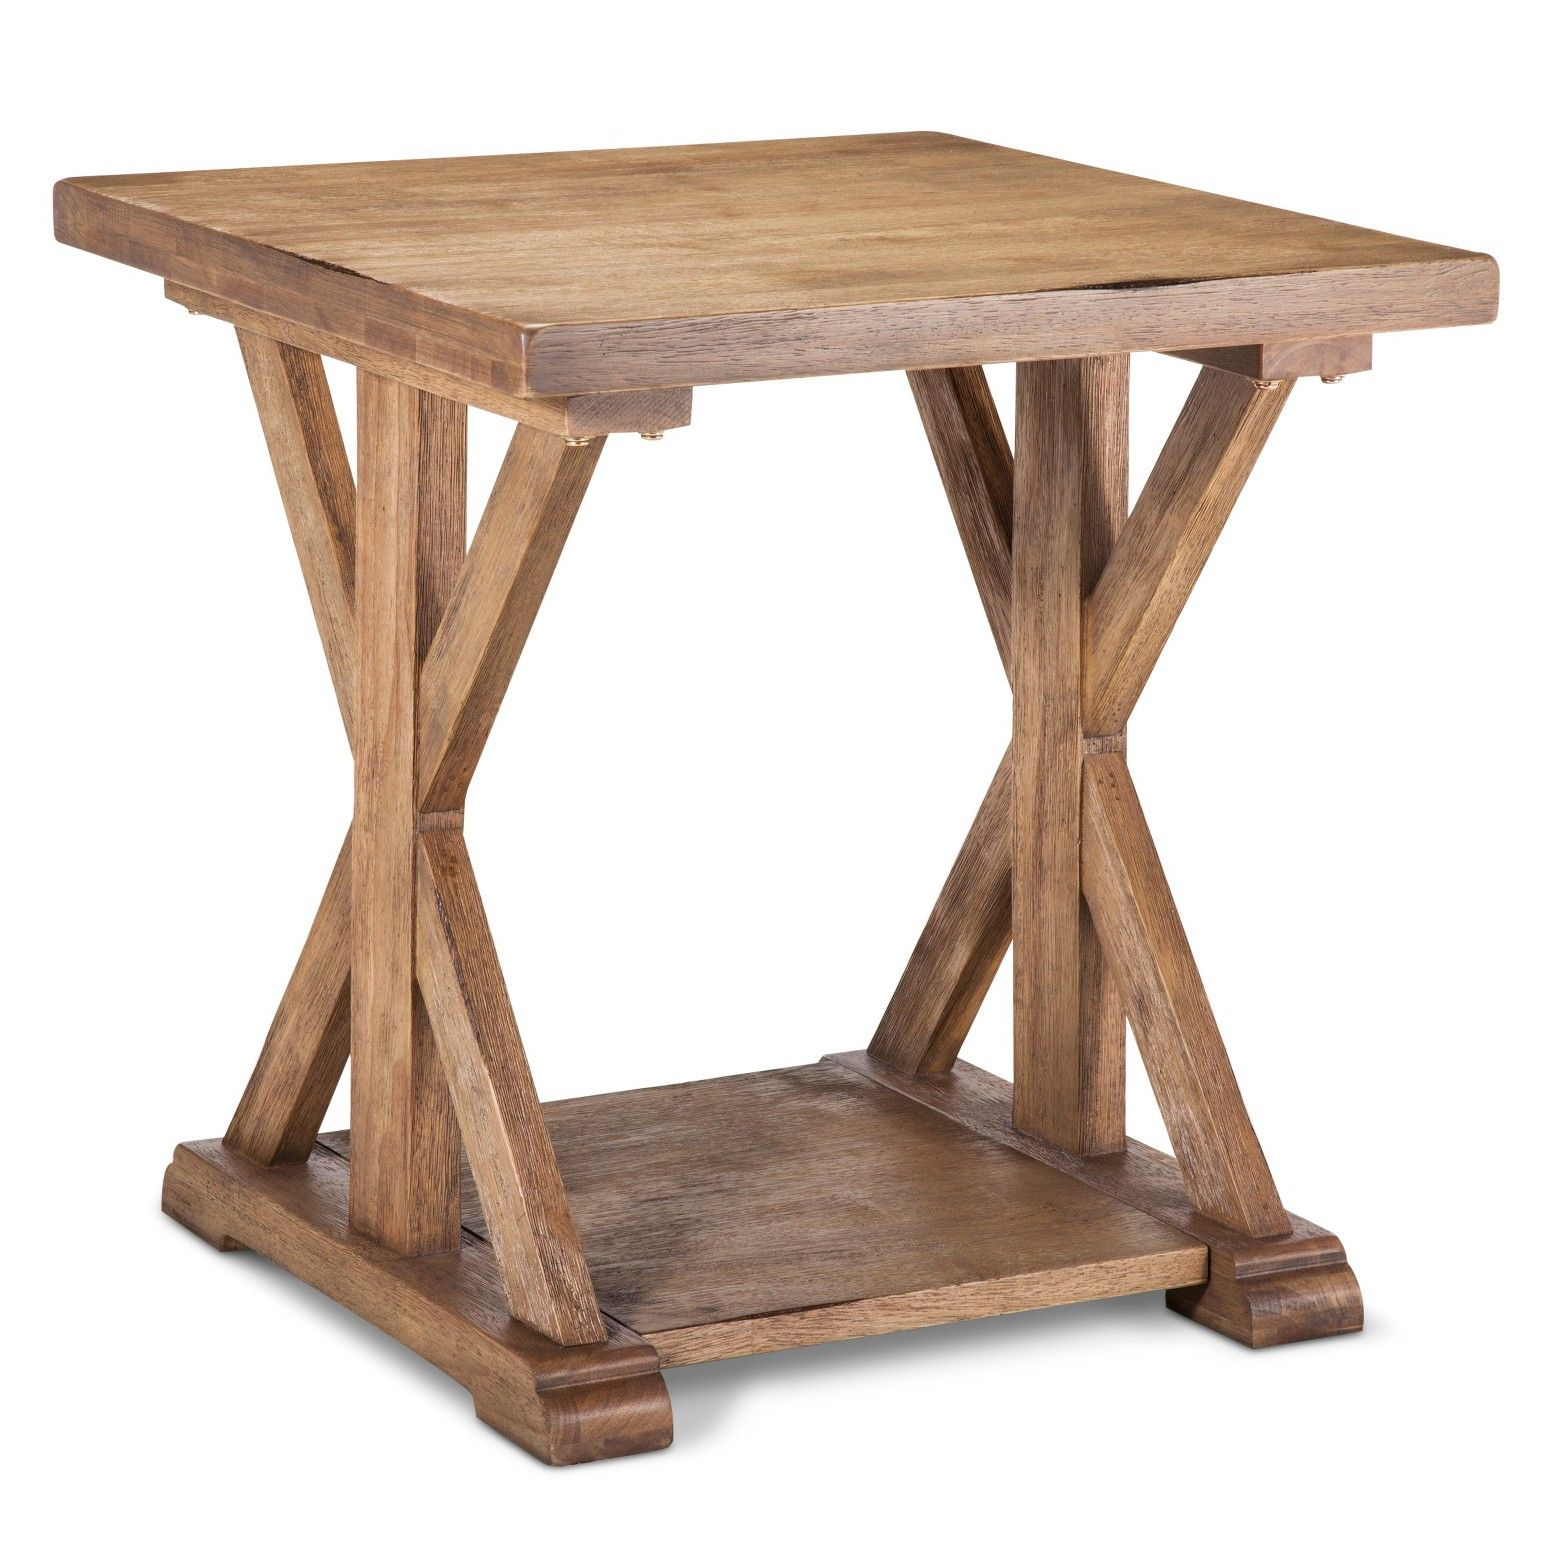 Add warmth to the room with the Wood Farmhouse End Table